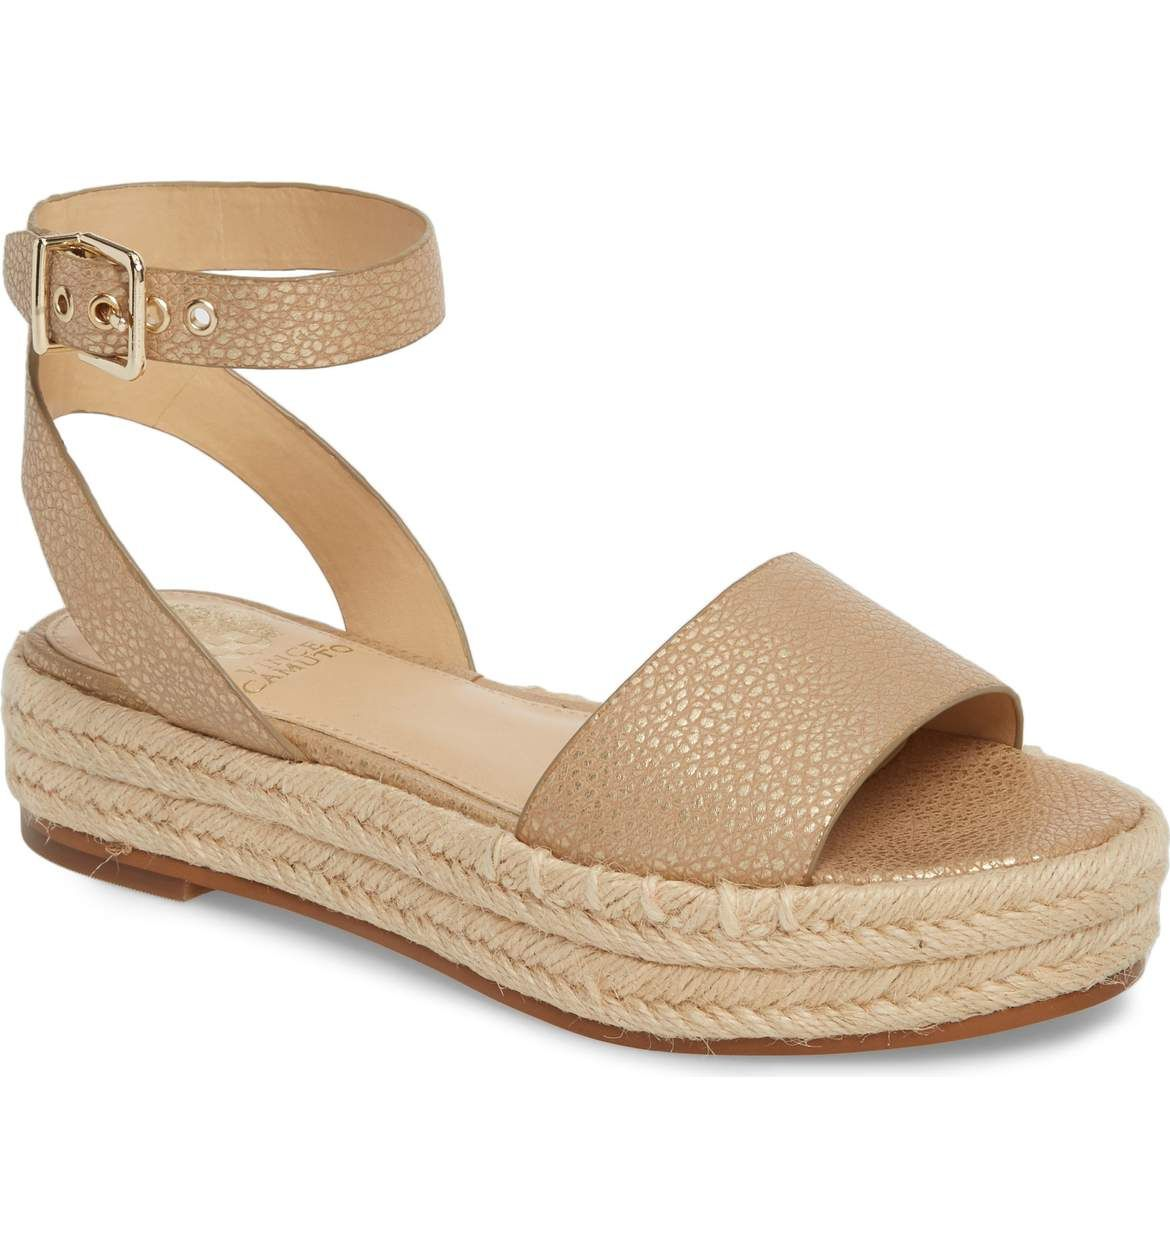 Ankle strap heels, Womens sandals